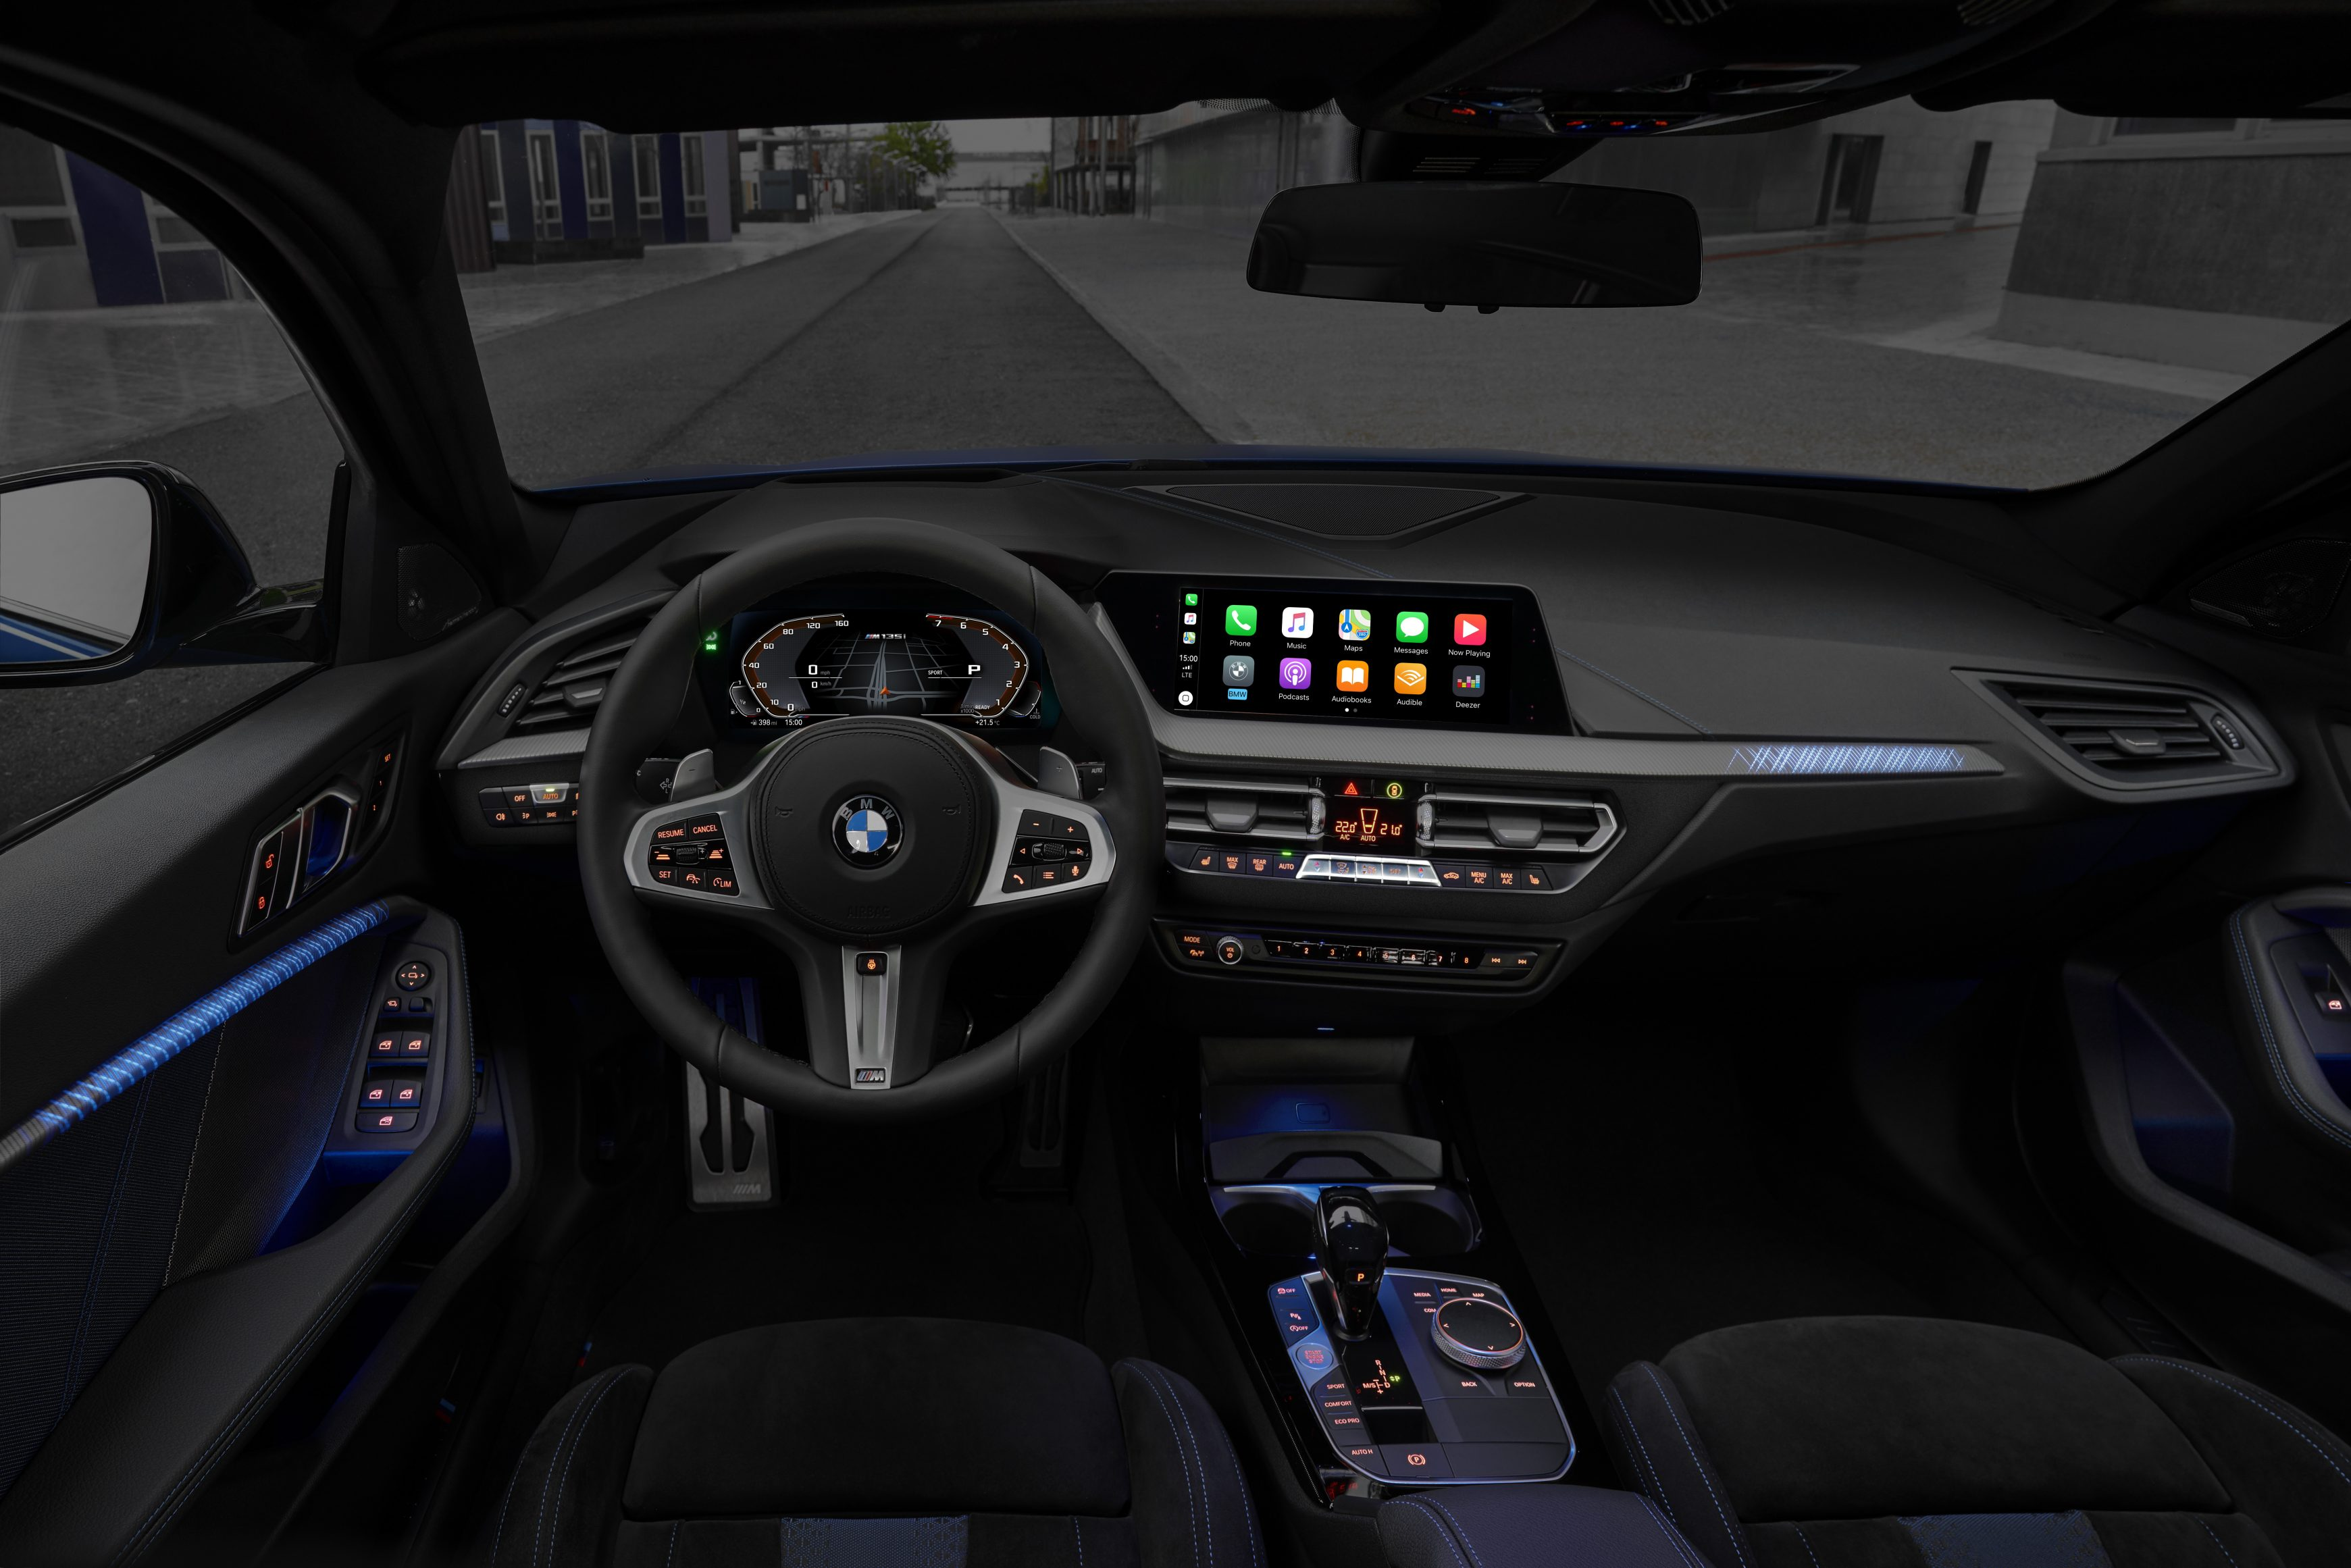 The all new BMW 1 Series infotainment system